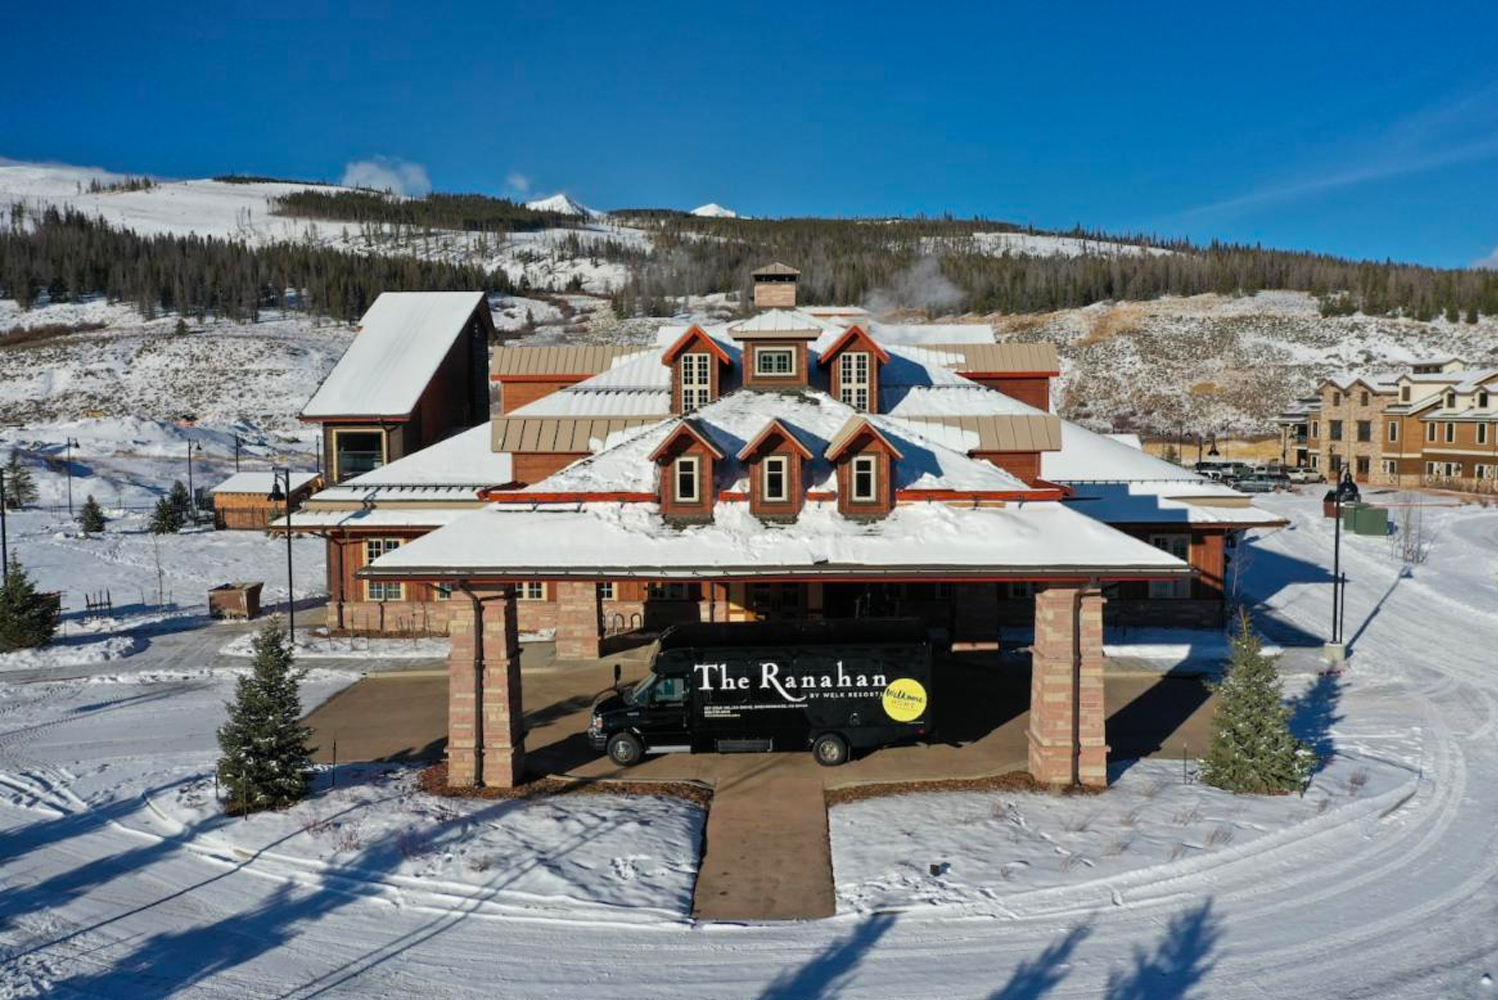 The Ranahan by Welk Resorts opened as a six-acre property overlooking the Blue River in historic Breckenridge, Colorado.